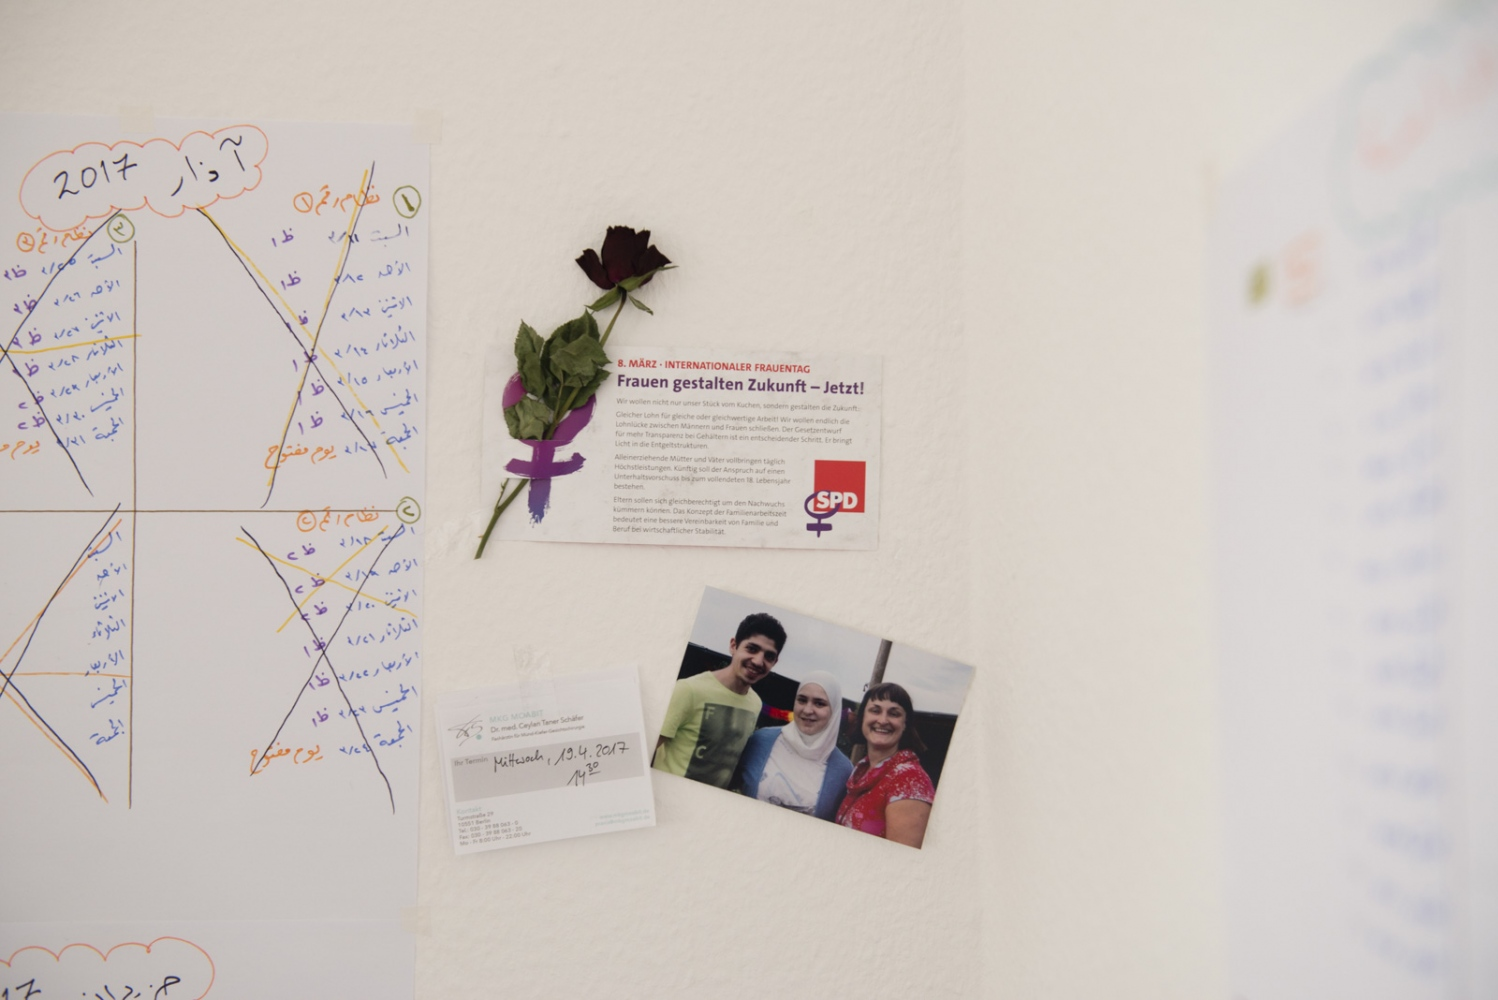 BERLIN| GERMANY | 2017-04-11 | Notes, photos and a studying calendar on the wall of Amani and Maher's study room. Amani (32) had to flee Damascus alongside his best friend at the time, Maher (24), to leave a troubled past behind in Damascus. Maher propose to Amani despite the unusual age gap and her previous marriage and the couple got married in Istanbul. Upon arriving in Germany, Amani restored a new life and gave birth to Kareem in Nov 2016. The couple are now settled in Lichtenberg, Berlin.